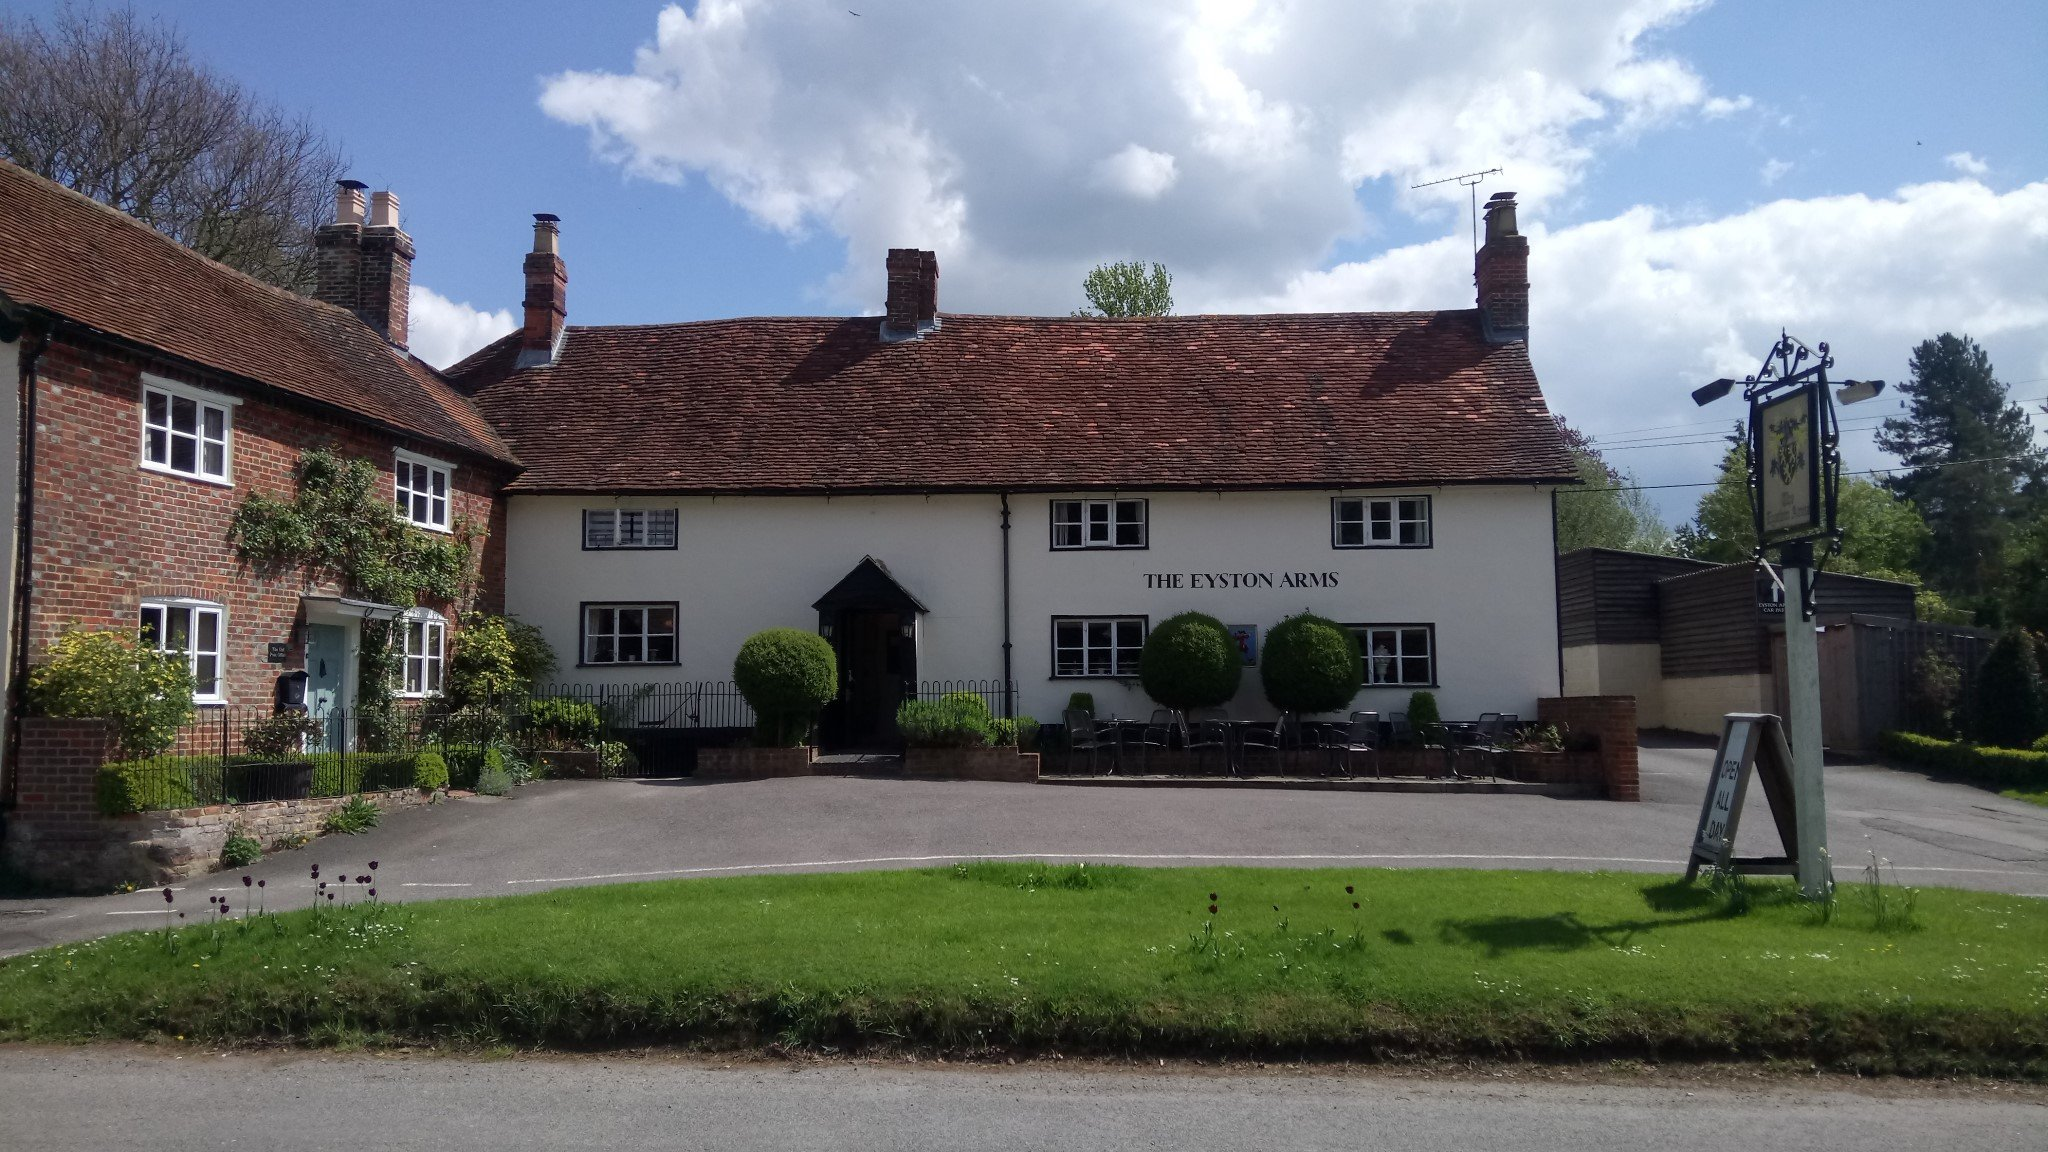 The Eyston Arms, East Hendred, Wantage, Oxfordshire